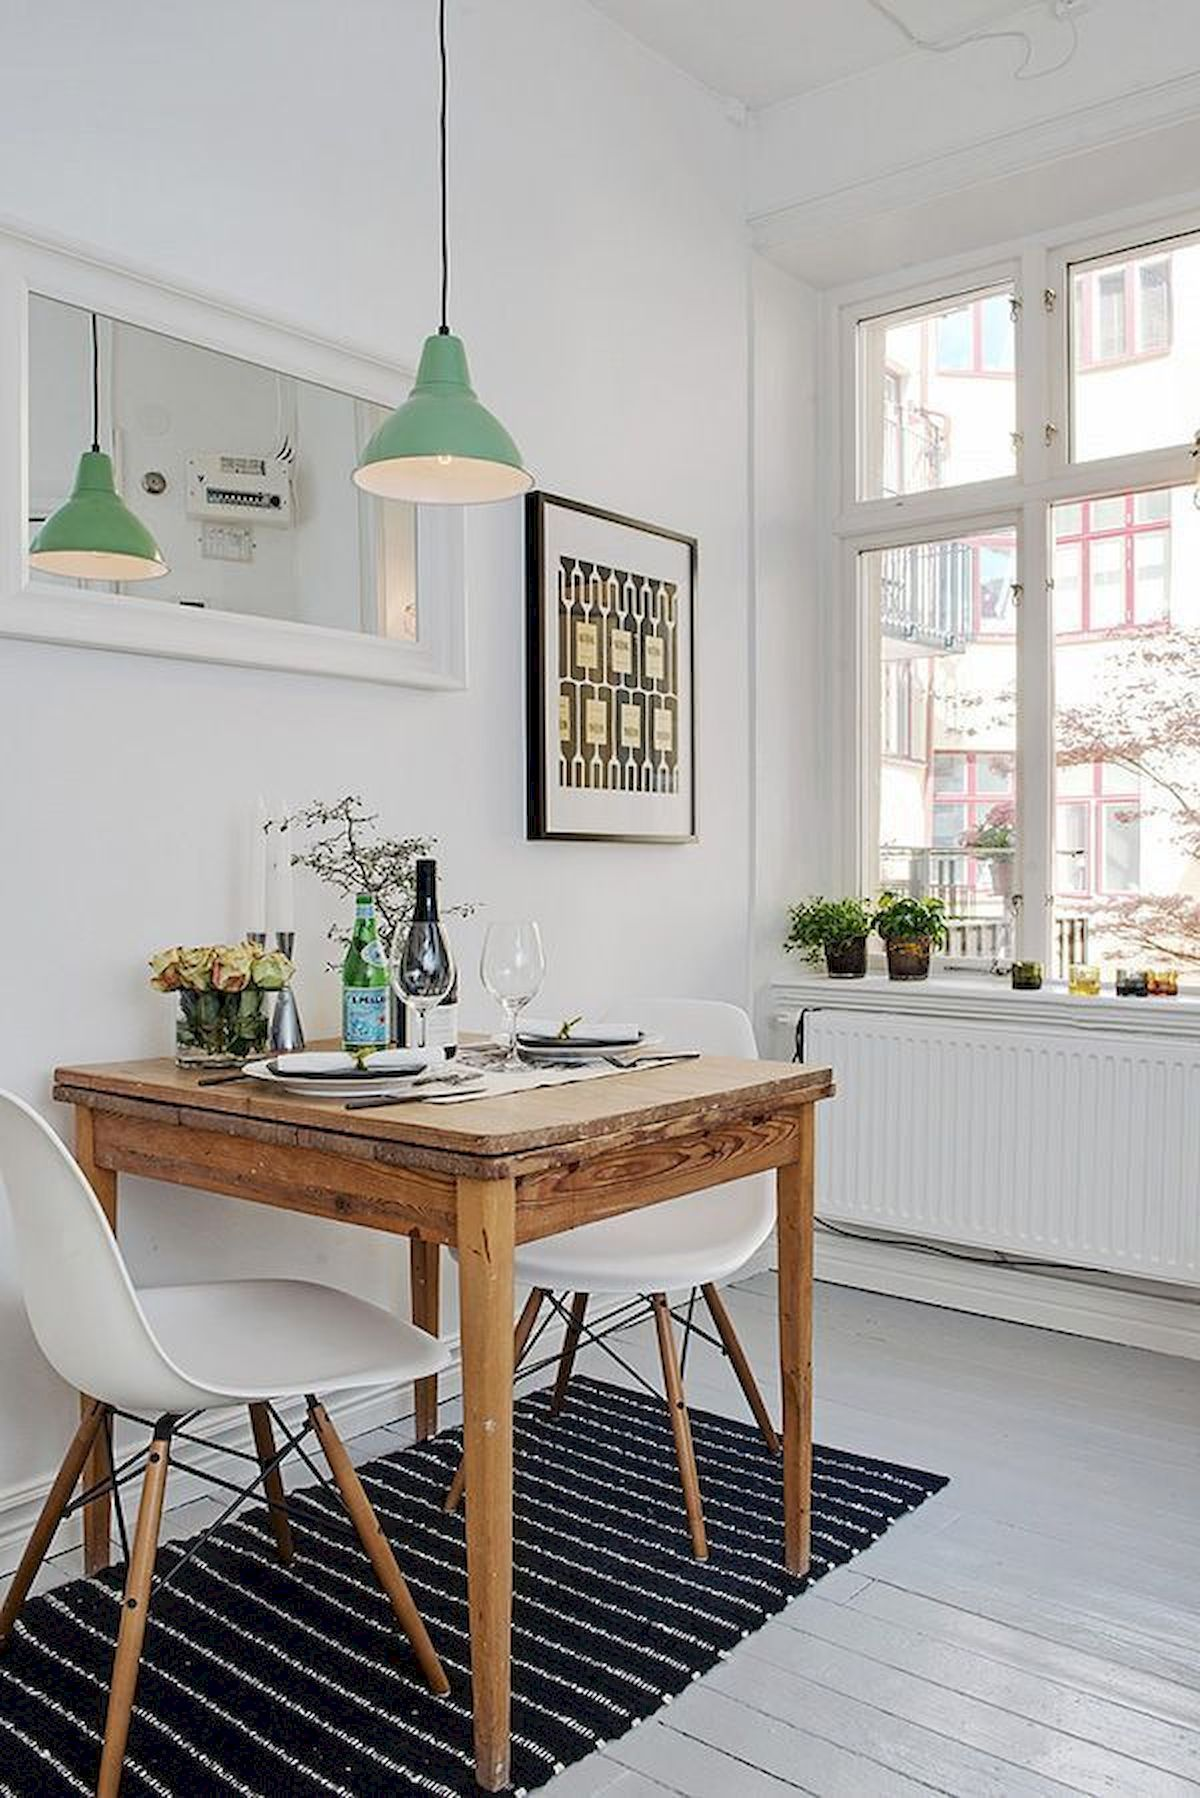 52 Beautiful Small Dining Room Ideas On A Budget images